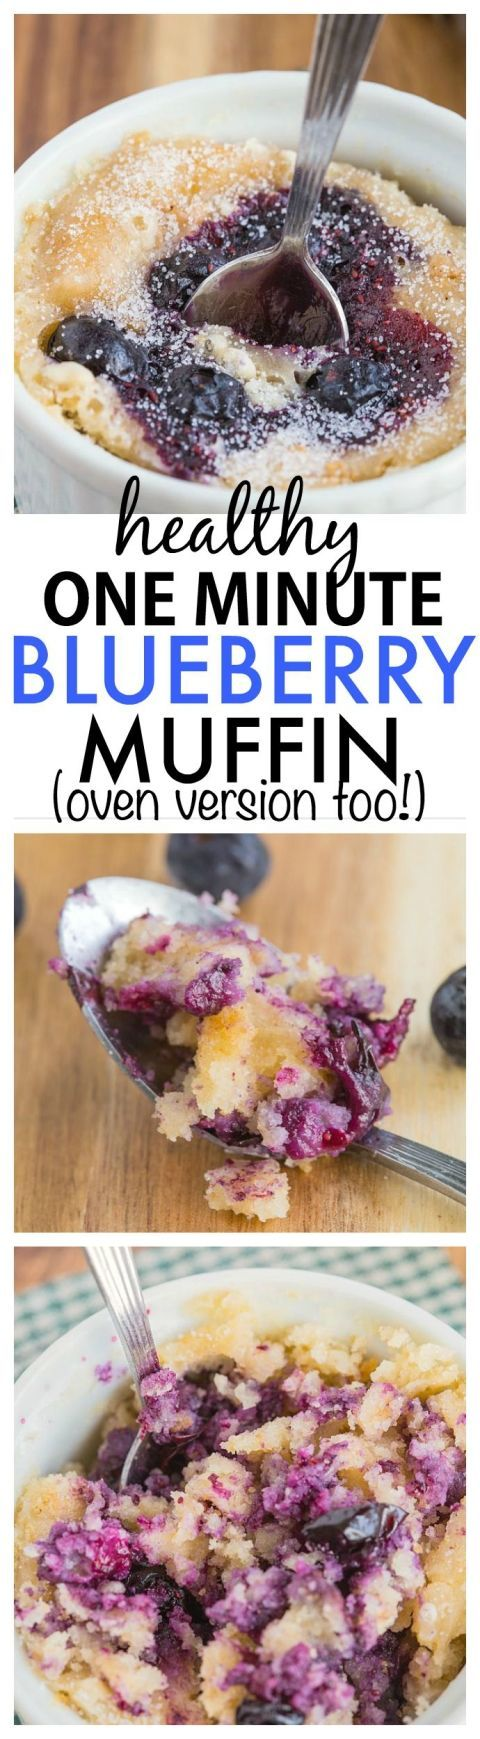 Healthy 1 Minute Blueberry Muffin- Inspired by Starbucks you only need one minute to whip this healthy moist fluffy and delicious mug muffin- There is an oven version too! {vegan gluten-free paleo options}